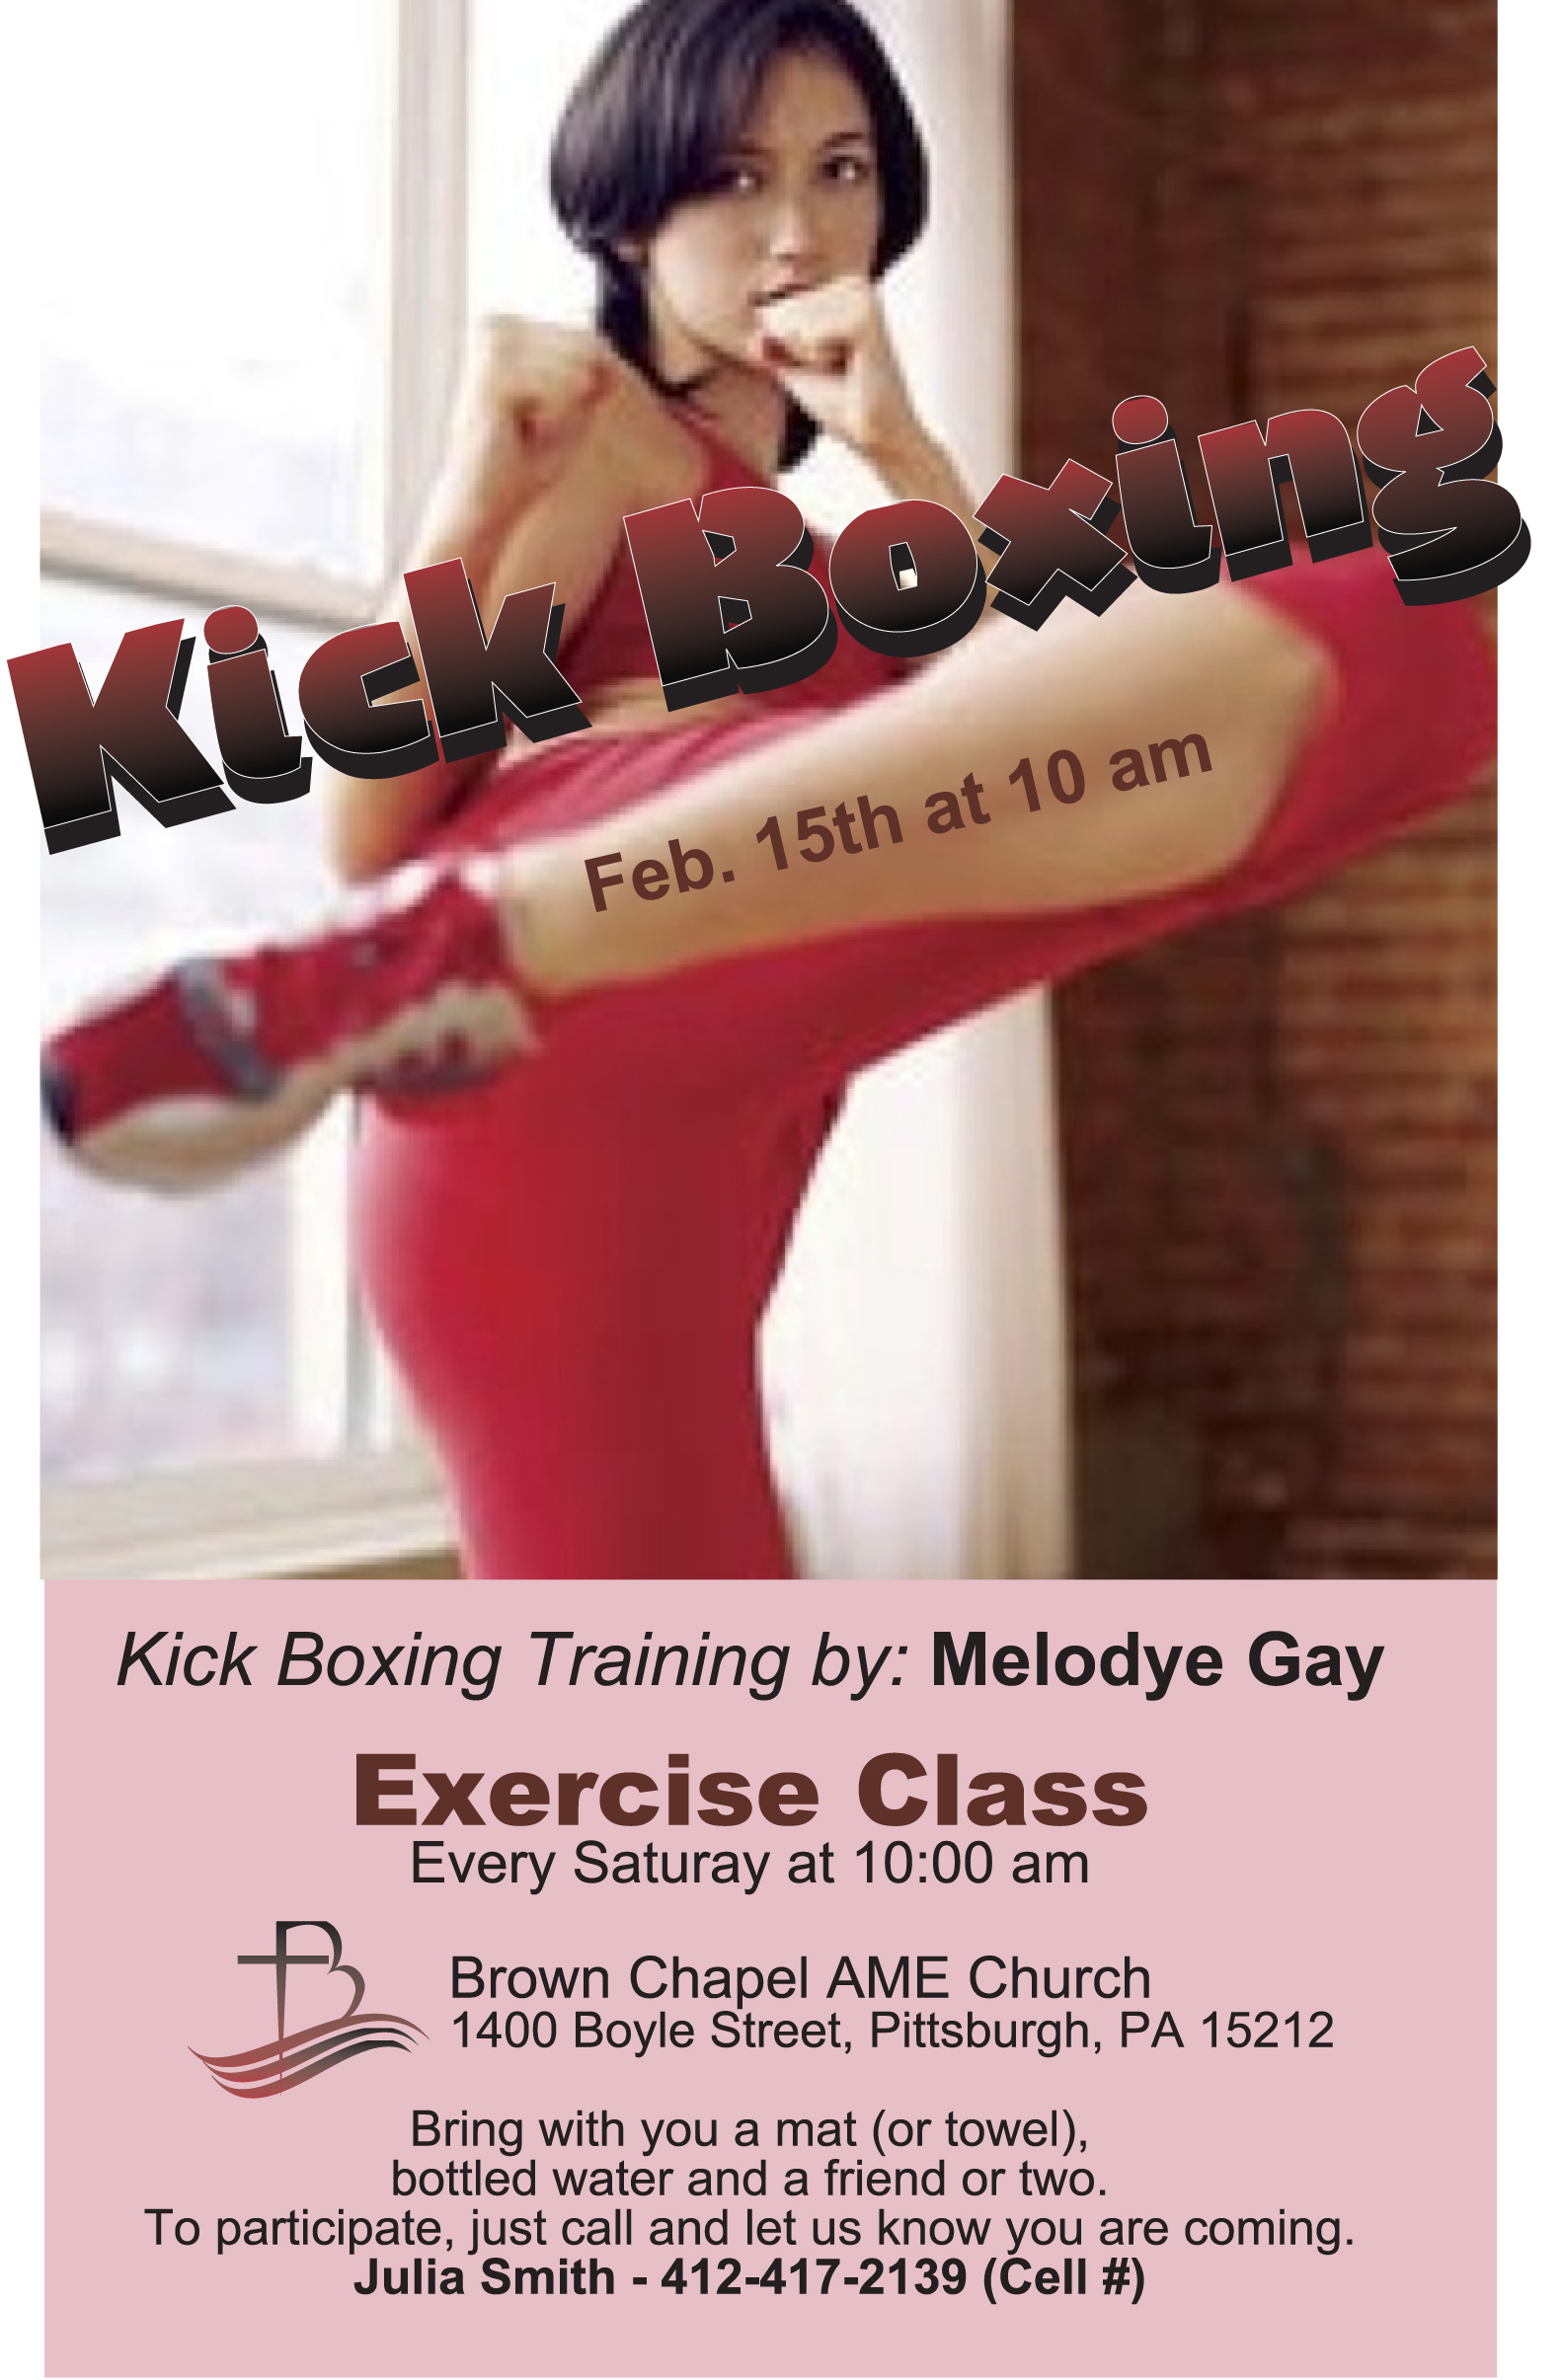 Kick boxing flyer - Feb 15th